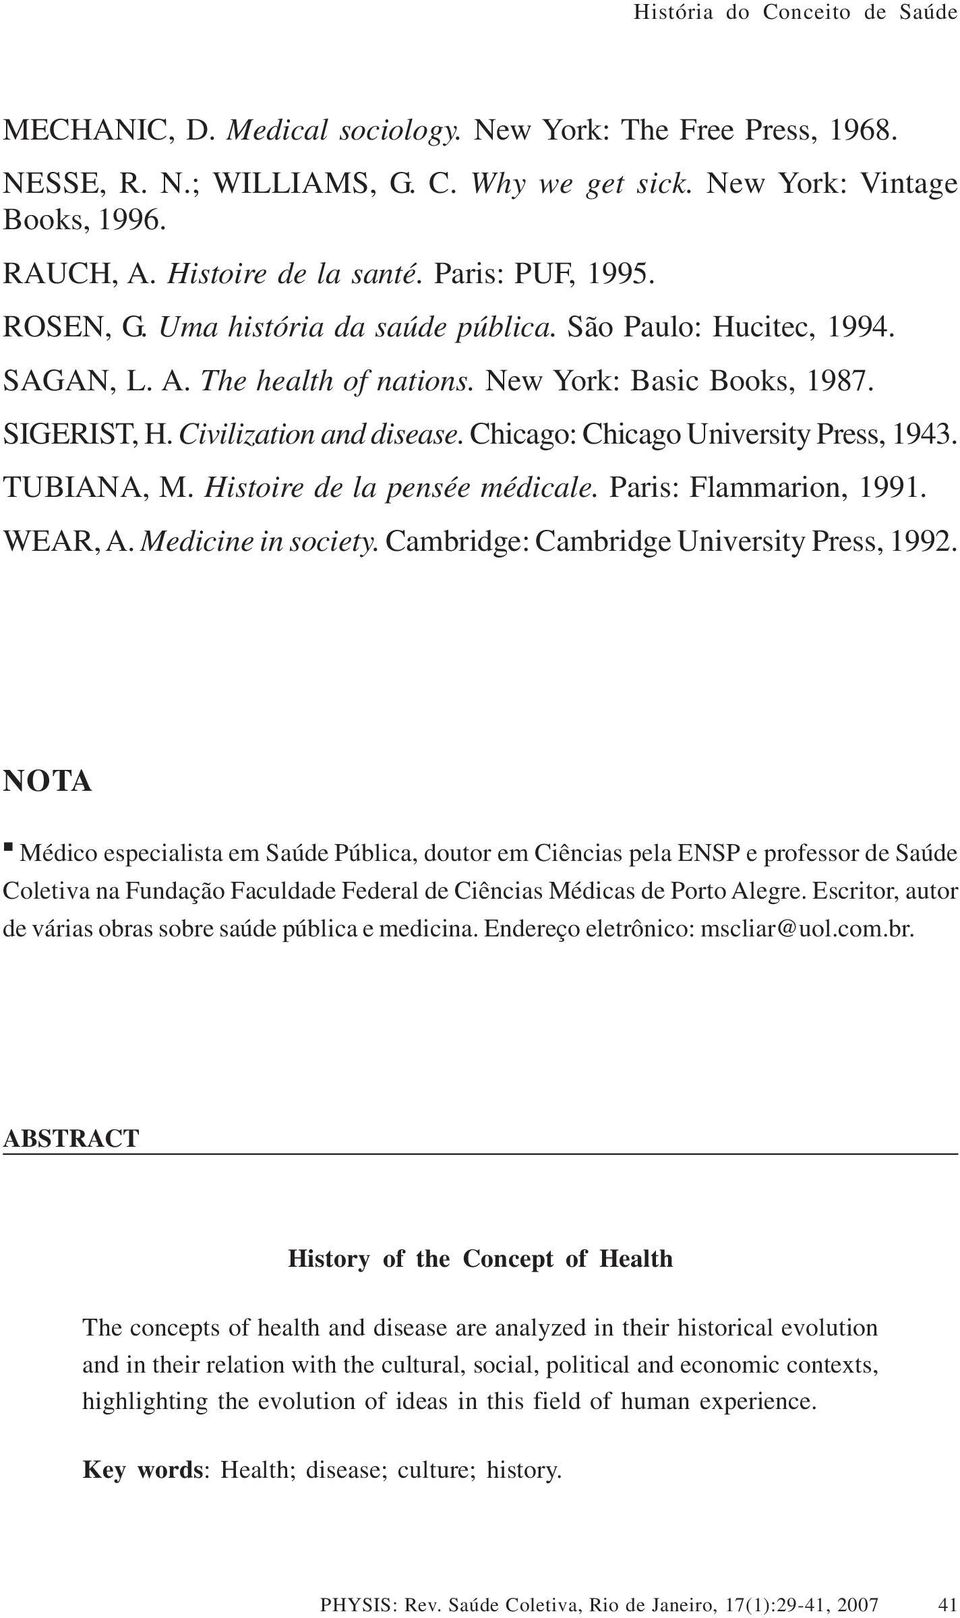 Chicago: Chicago University Press, 1943. TUBIANA, M. Histoire de la pensée médicale. Paris: Flammarion, 1991. WEAR, A. Medicine in society. Cambridge: Cambridge University Press, 1992.